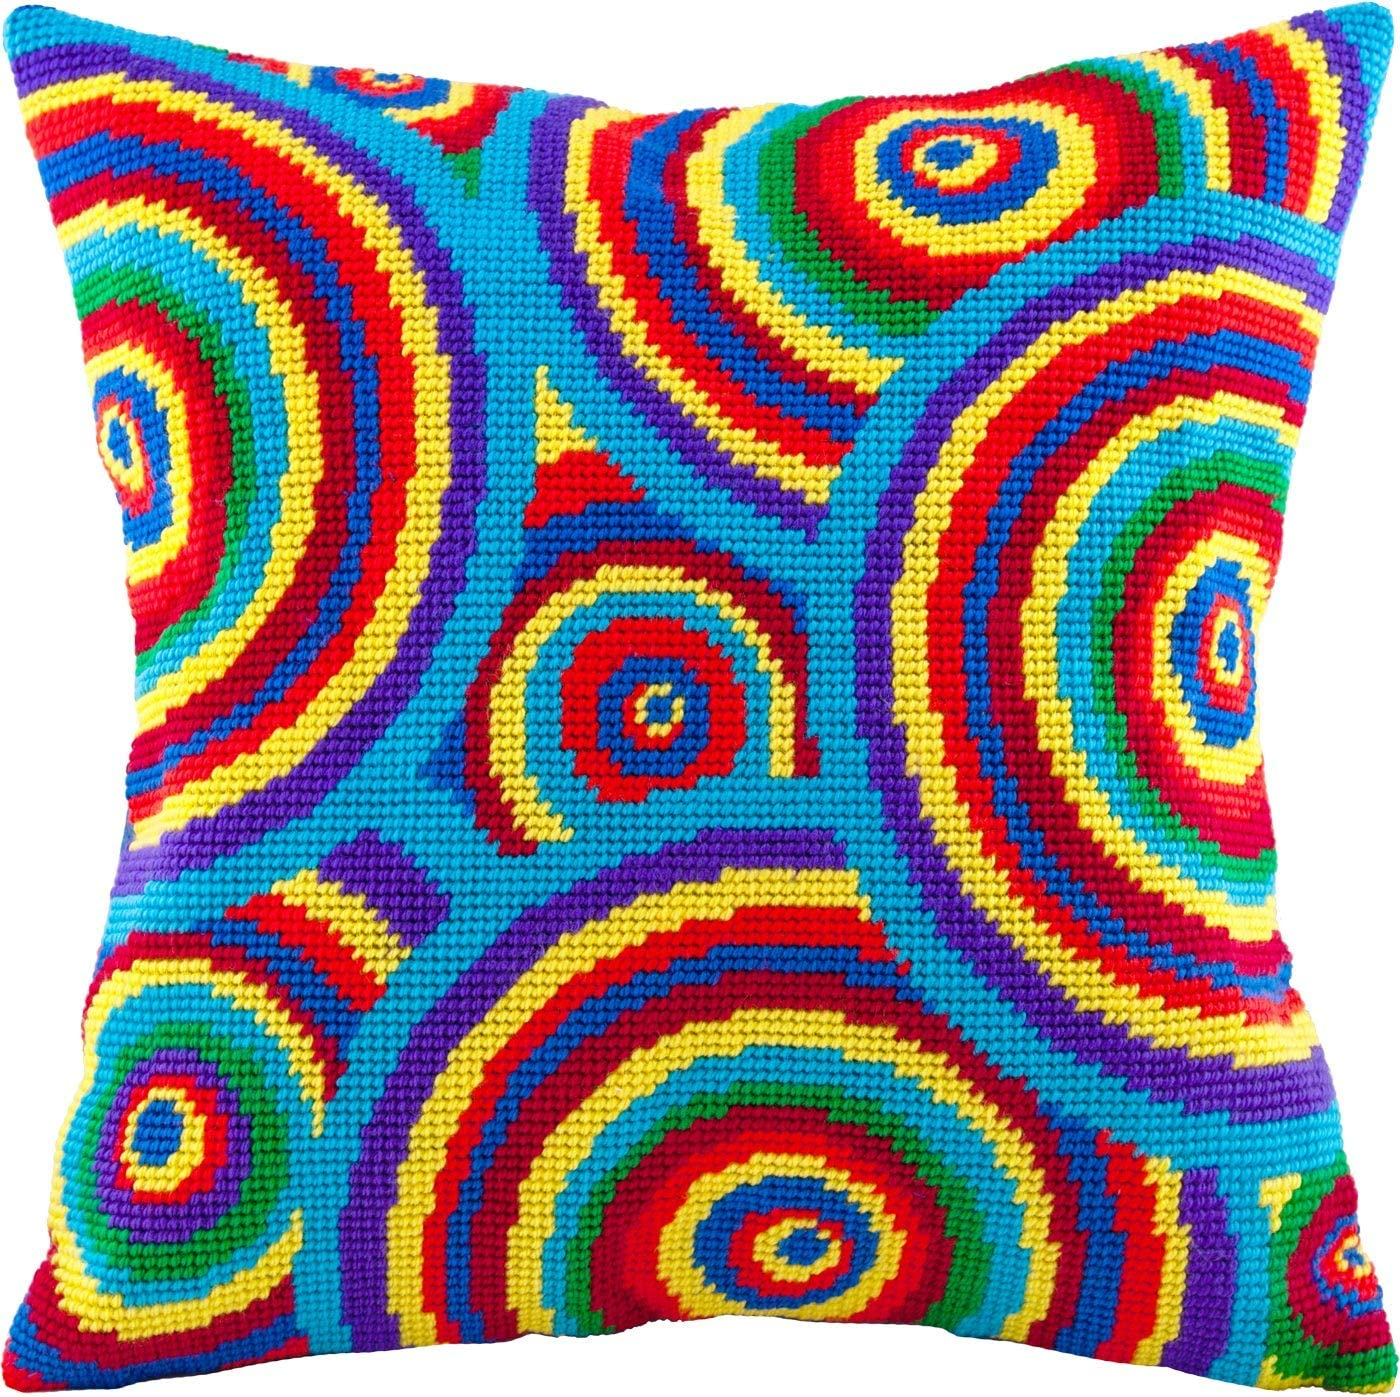 Needlepoint Kit Throw Pillow 16/×16 Inches European Quality Printed Tapestry Canvas Rainbow Circles